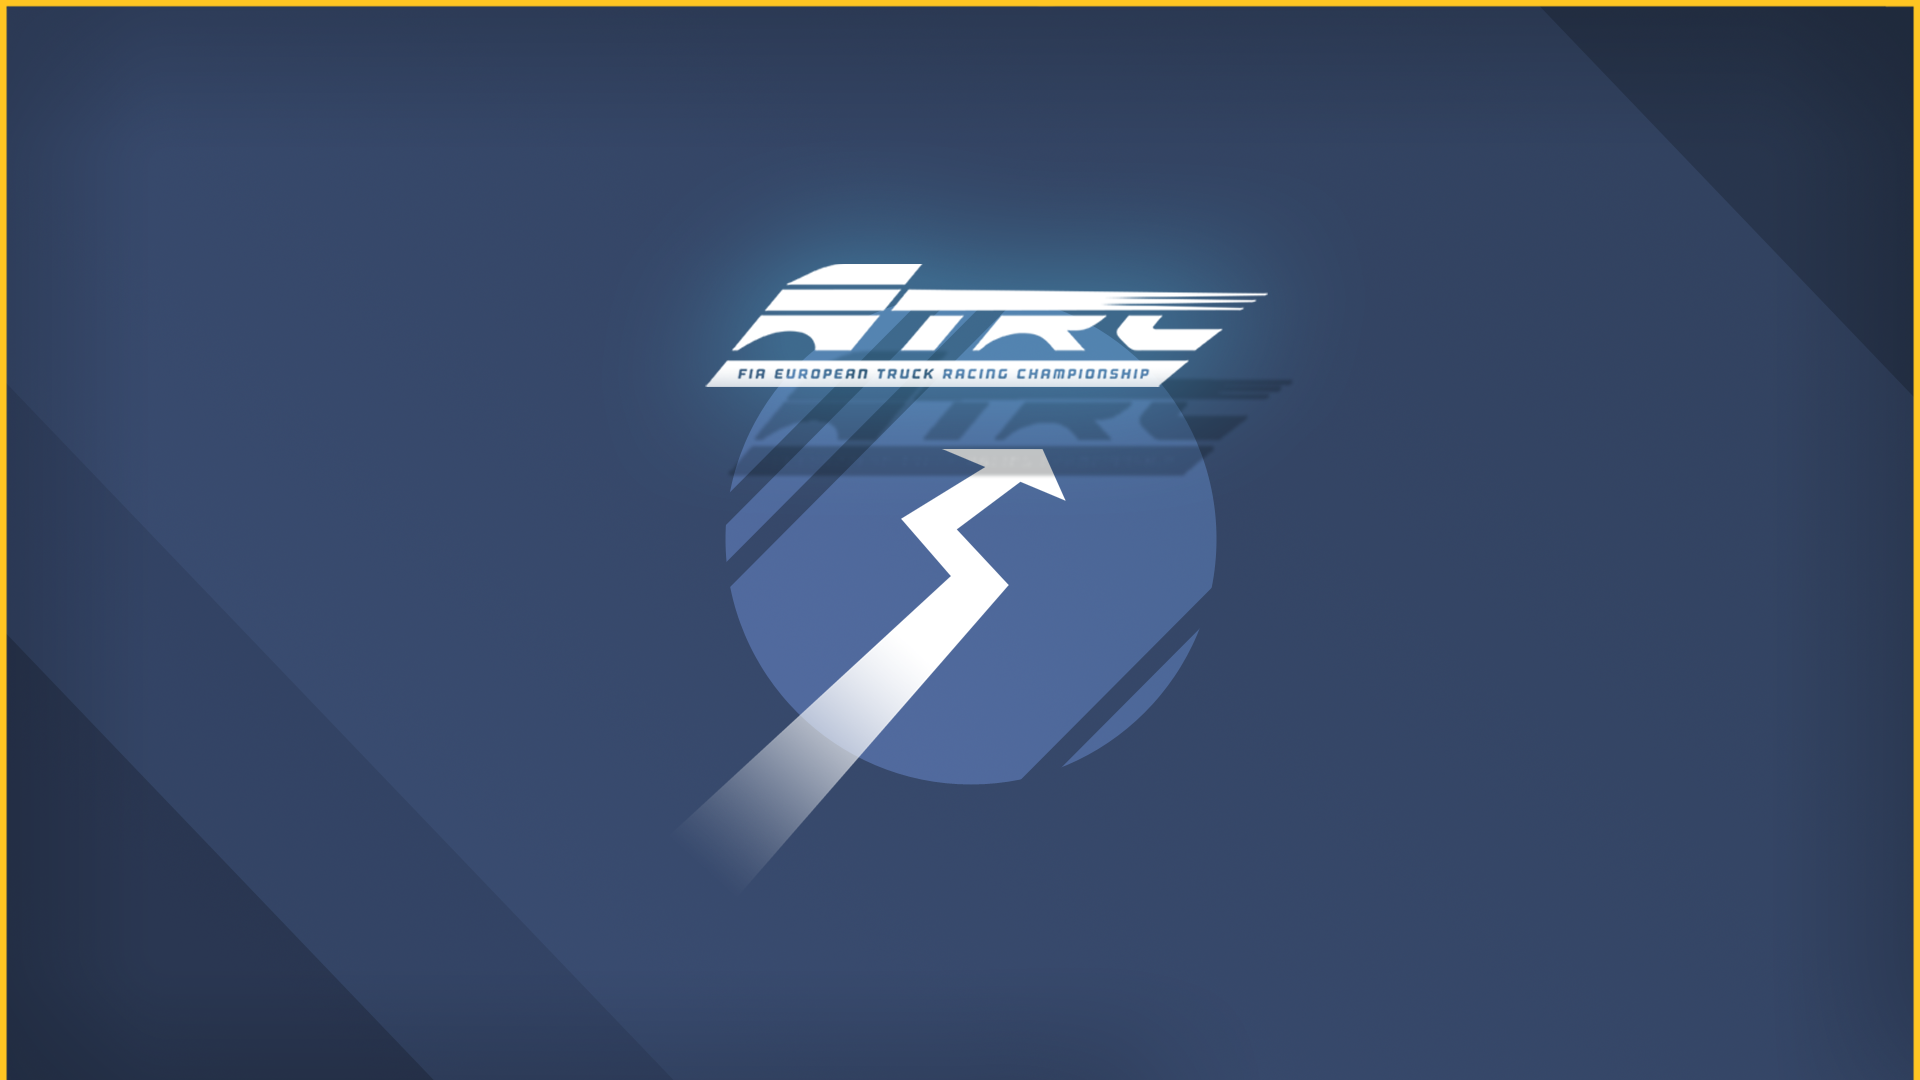 Icon for Moving up in the ETRC